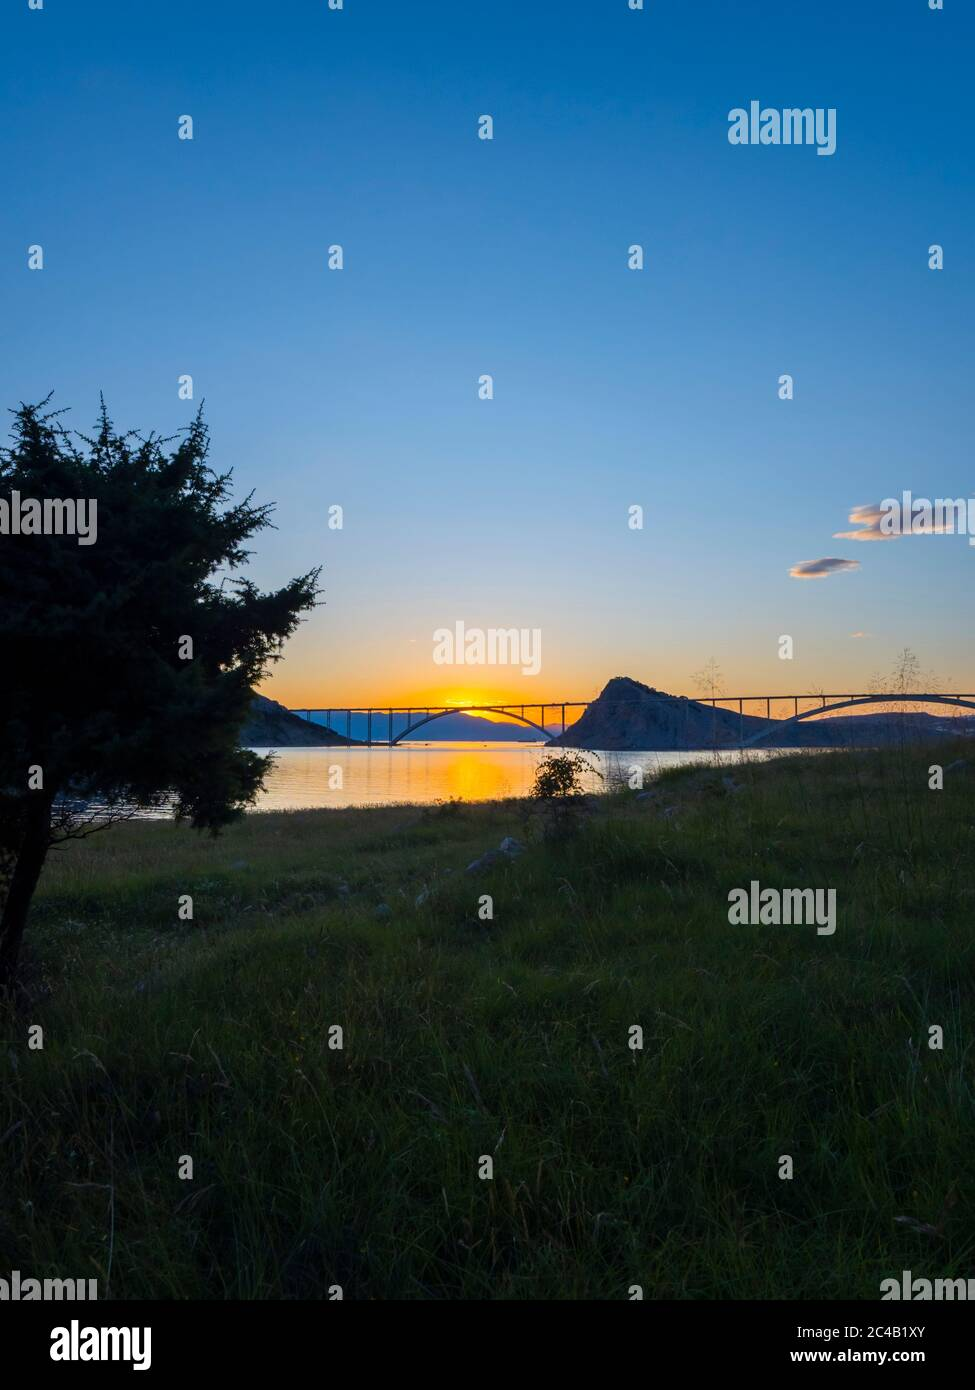 Sunset landscape silhouette silhouetting trees bridge mainland to island Krk Croatia Stock Photo